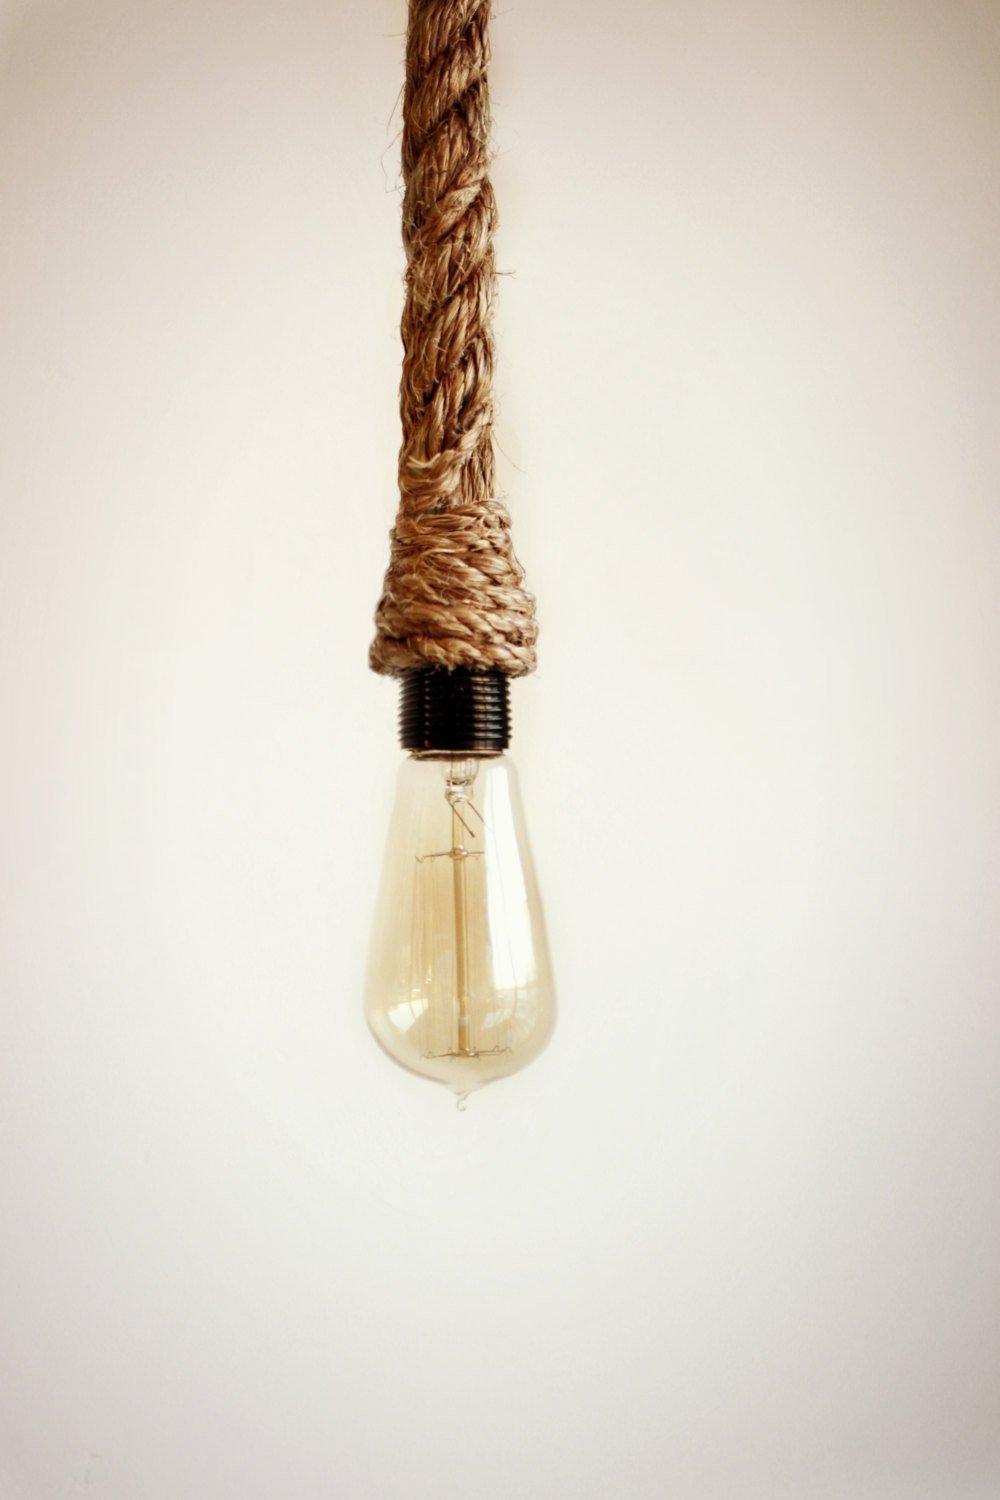 the latest 8c448 1c83d Rope Pendant Light hand wrapped in manila rope for pendent lighting,  nautical rope light - Kitchen island pendant light, jute twine rope, Rope  swag ...